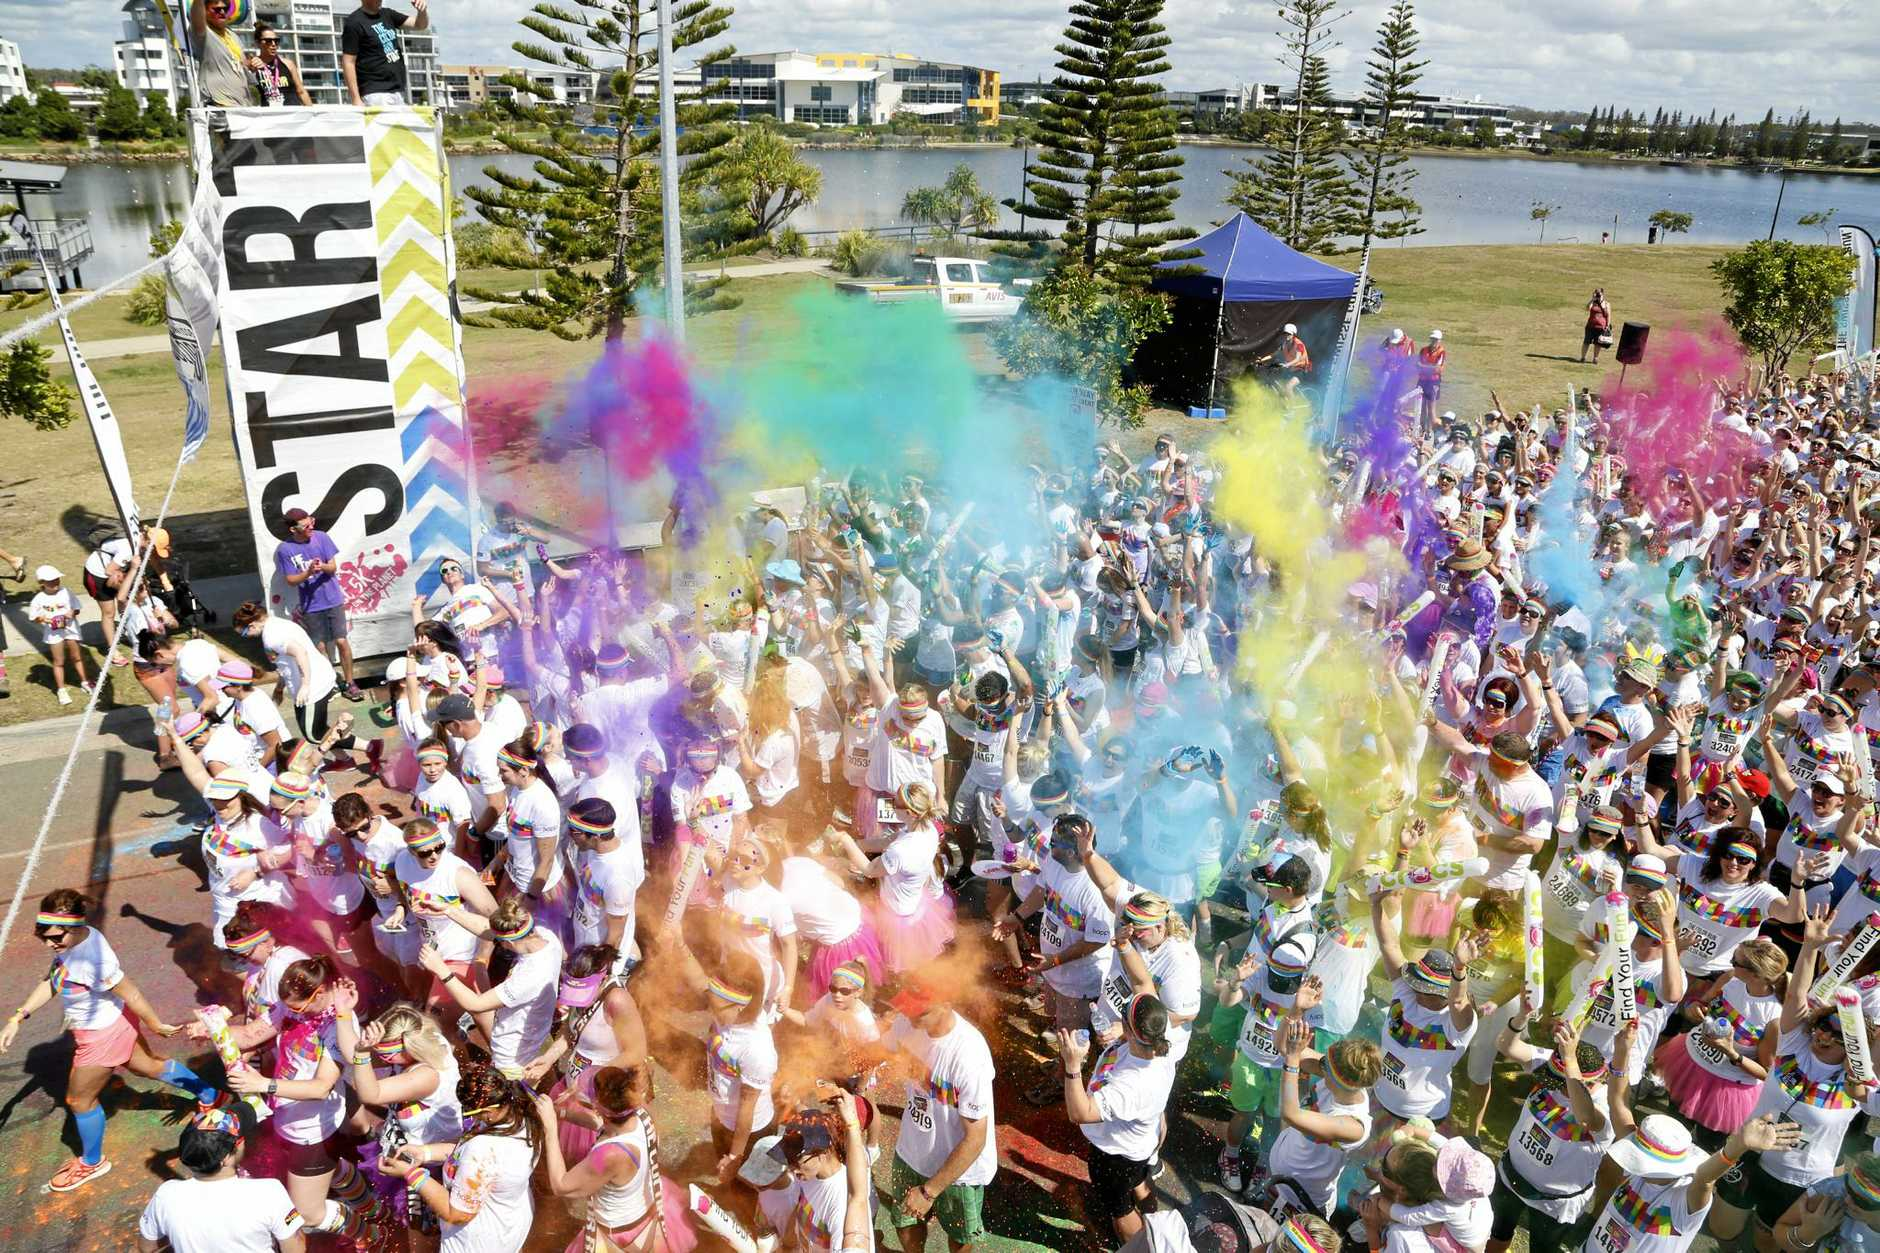 The Color Movement, brought to the Coast by the same team who brought us the Color Run, will host their first-ever festival on the Coast.